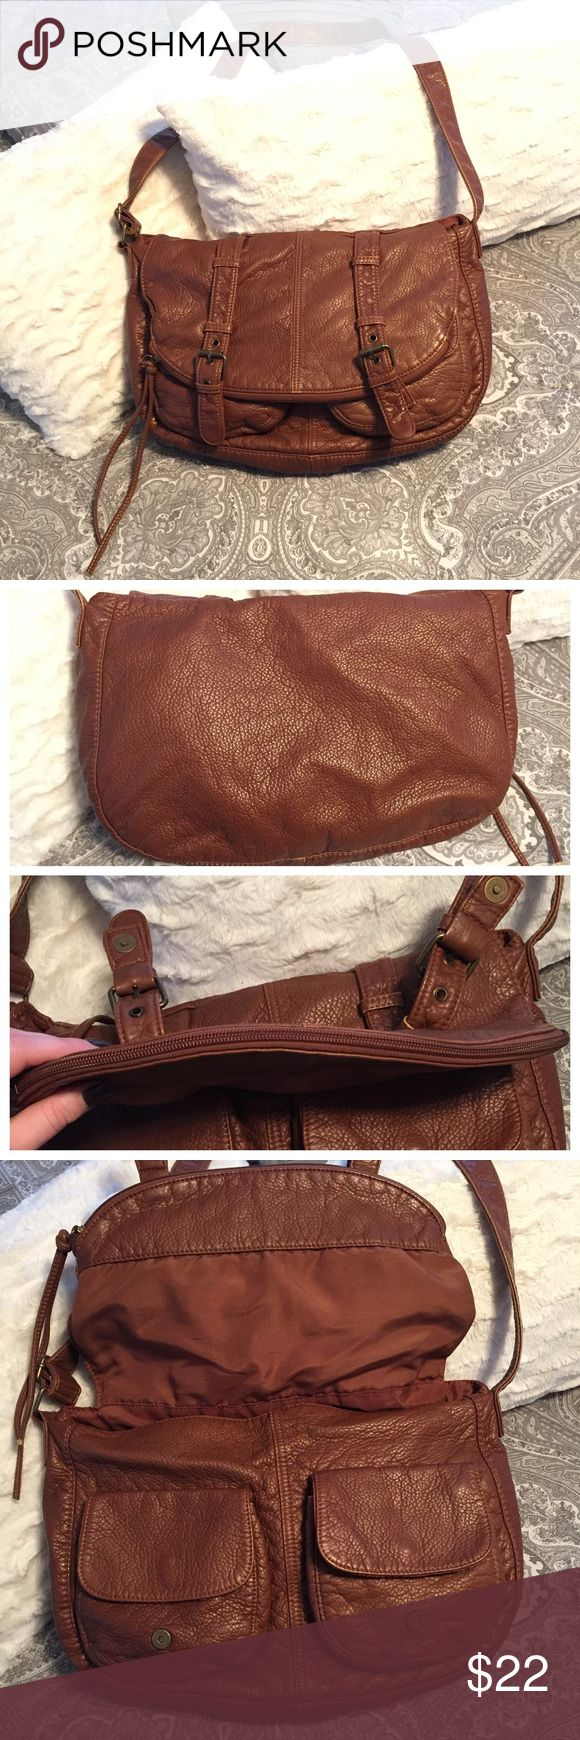 """Black Poppy faux leather crossbody PacSun Brown slouchy, soft faux leather crossbody (or shoulder bag) from Black Poppy (sold at PacSun). Inside has two side pockets and a zipper pocket, under the flap closure there are two outside pockets (shown in photos), zipper along flap opens an entire separate section of the purse. Lots of space. Only used a couple times, perfect condition. About 11"""" top to bottom, 14-15"""" across, 20"""" strap drop Black Poppy Bags Crossbody Bags"""